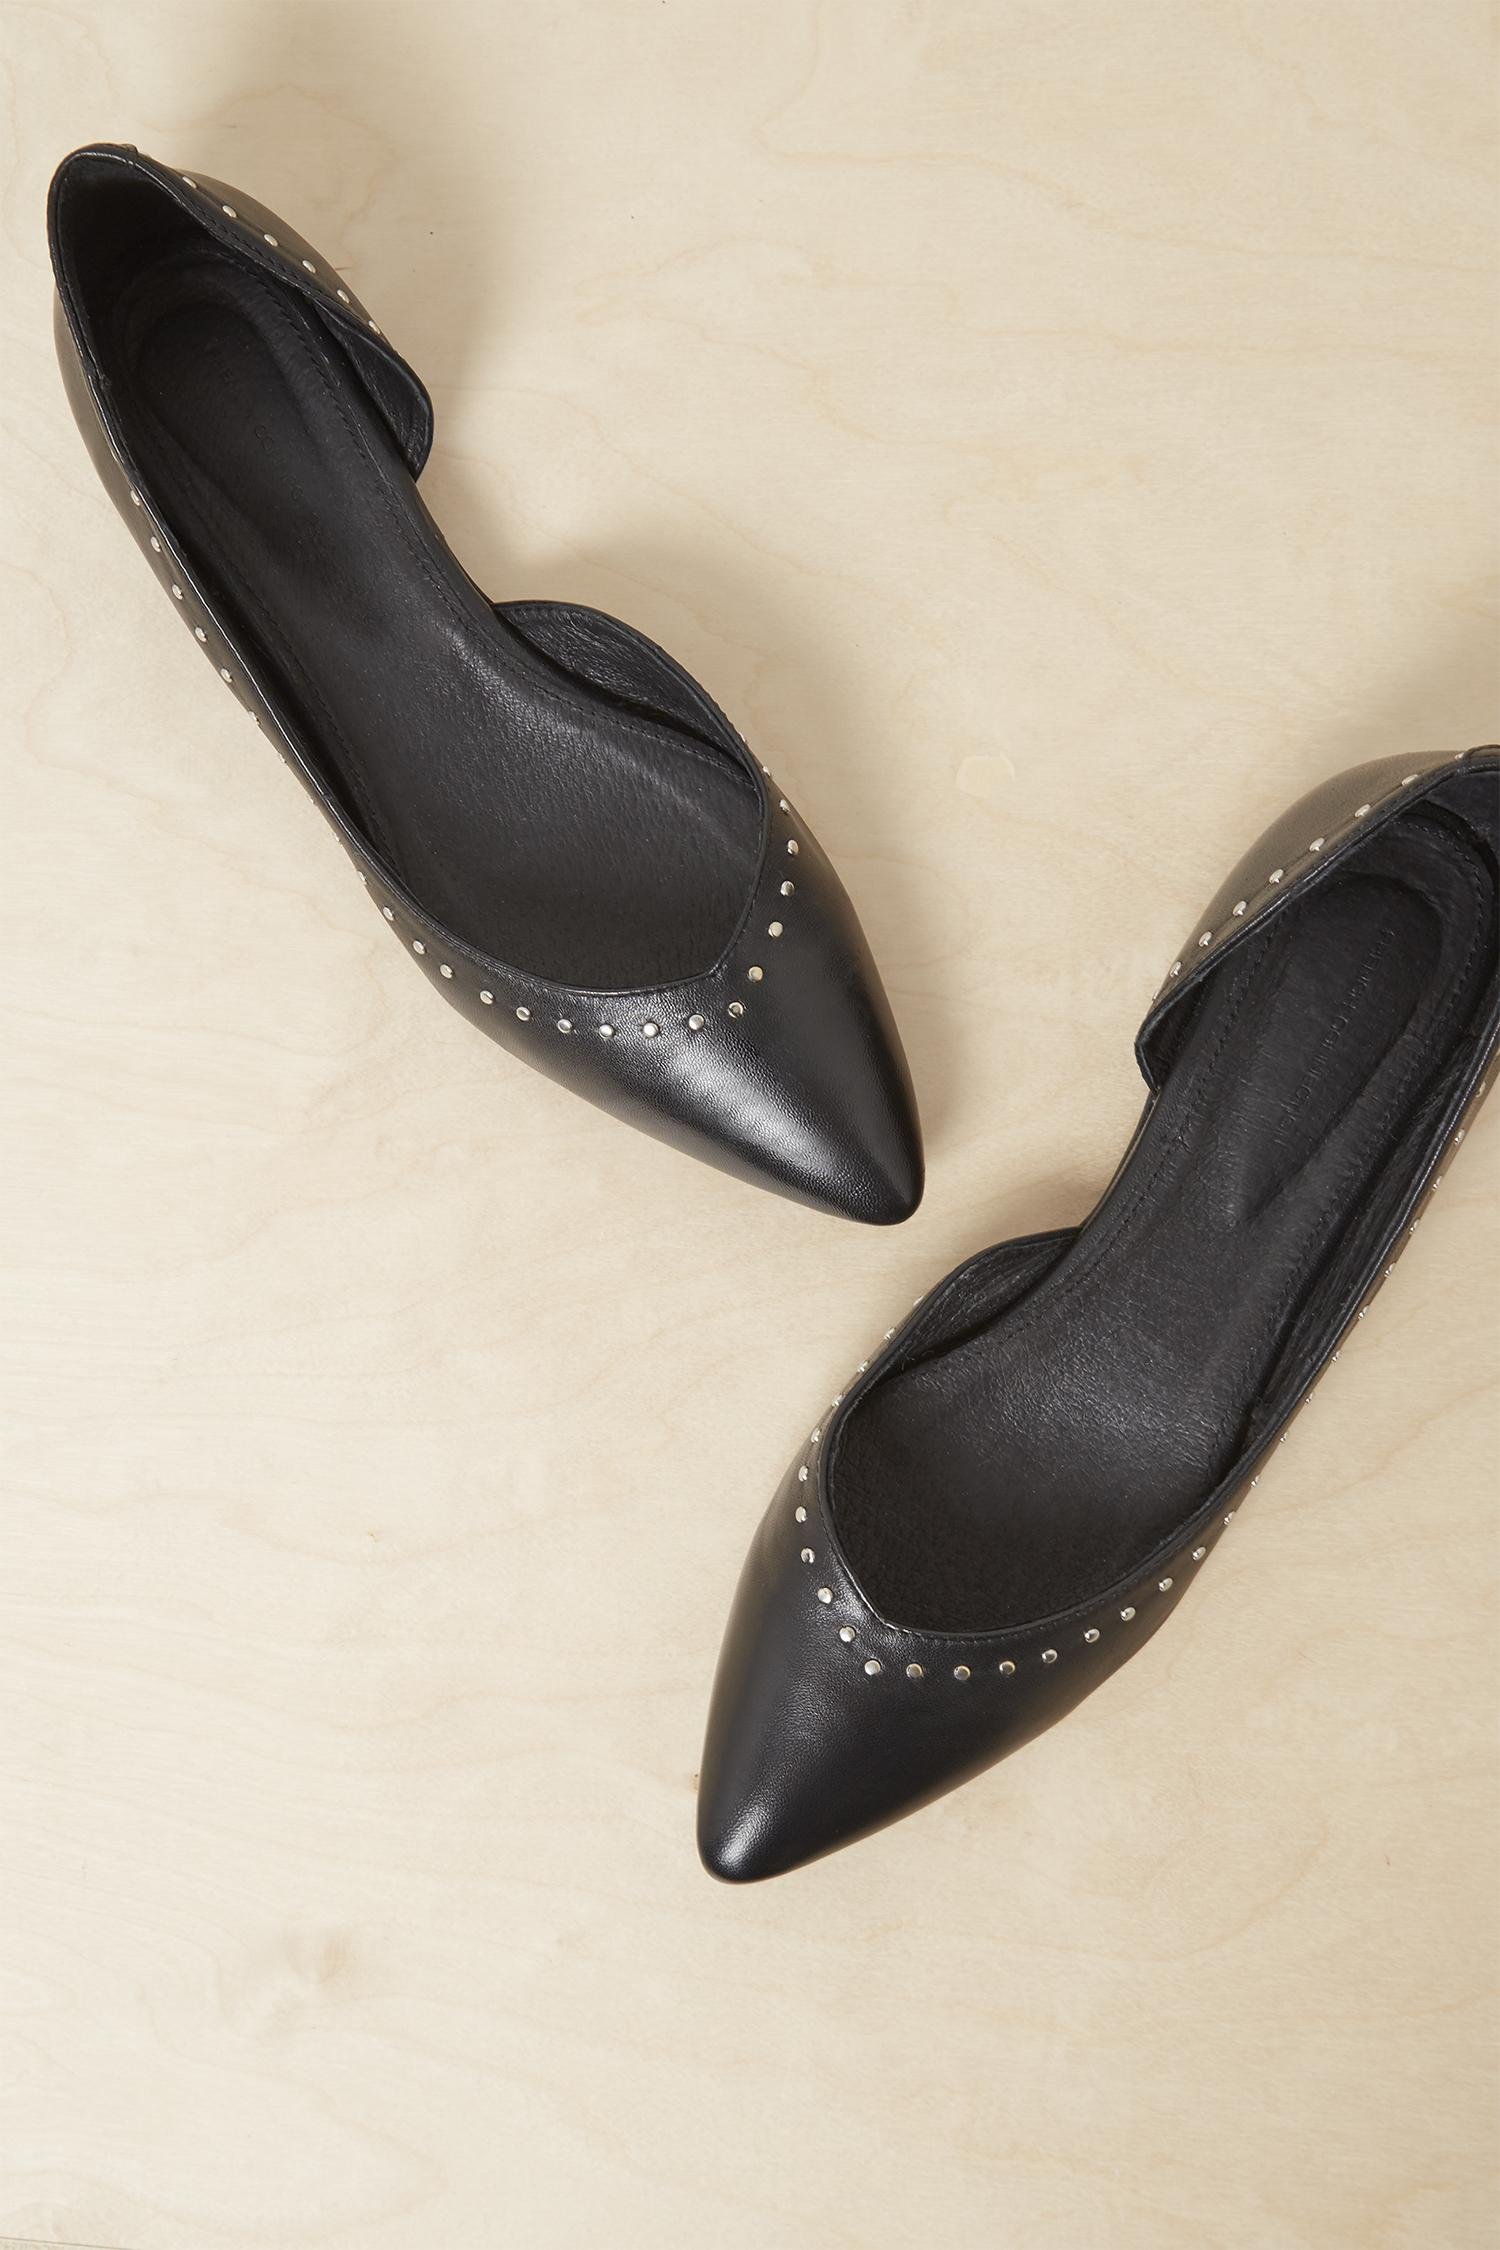 a2867db9078 Lyst - French Connection Verenna Stud Cut Out Ballet Flats in Black